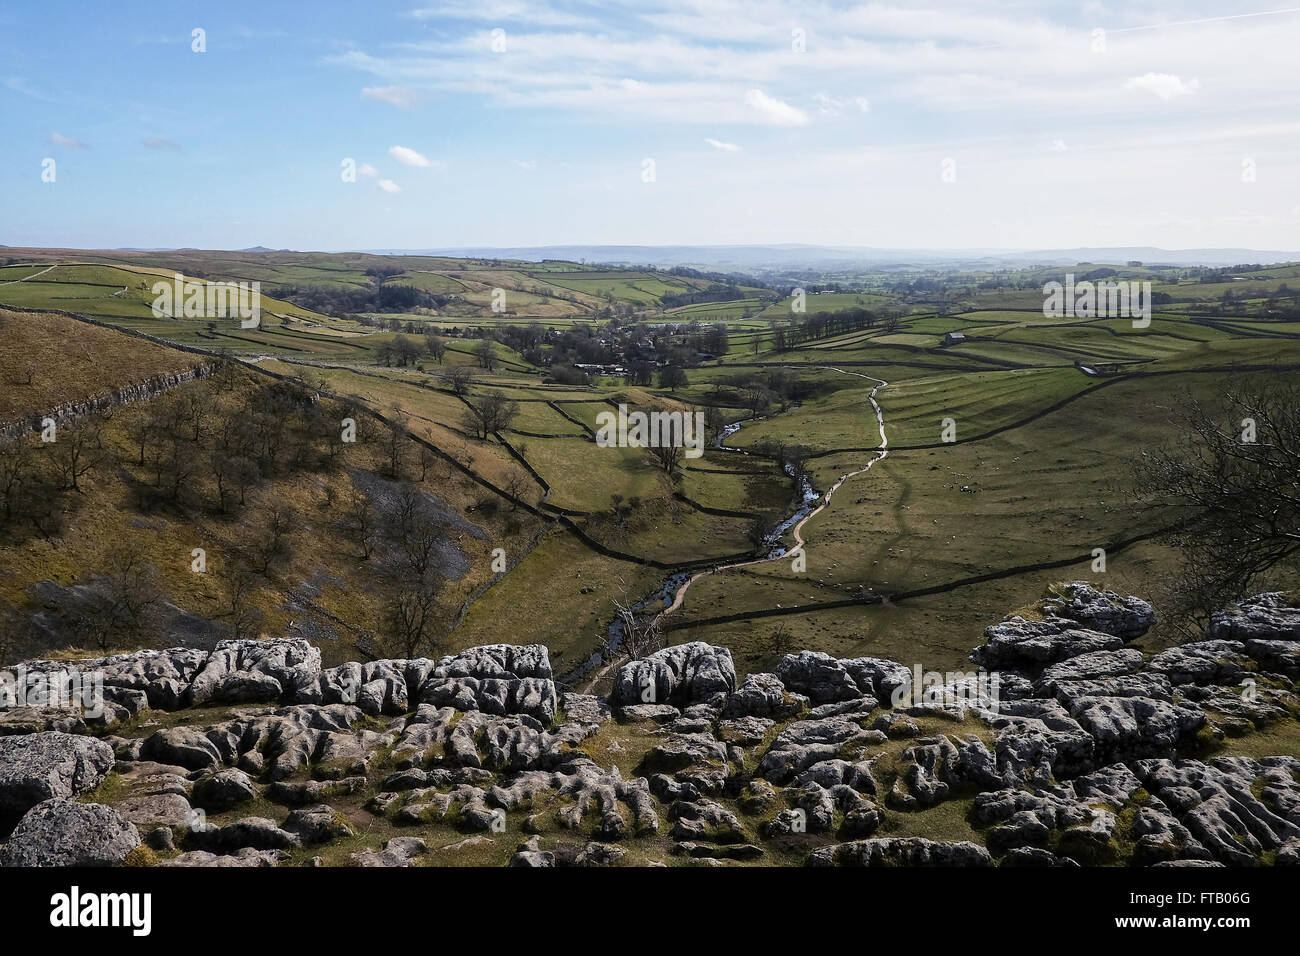 View from the top of Malham Cove, Yorkshire Dales National Park, UK showing limestone pavement. - Stock Image